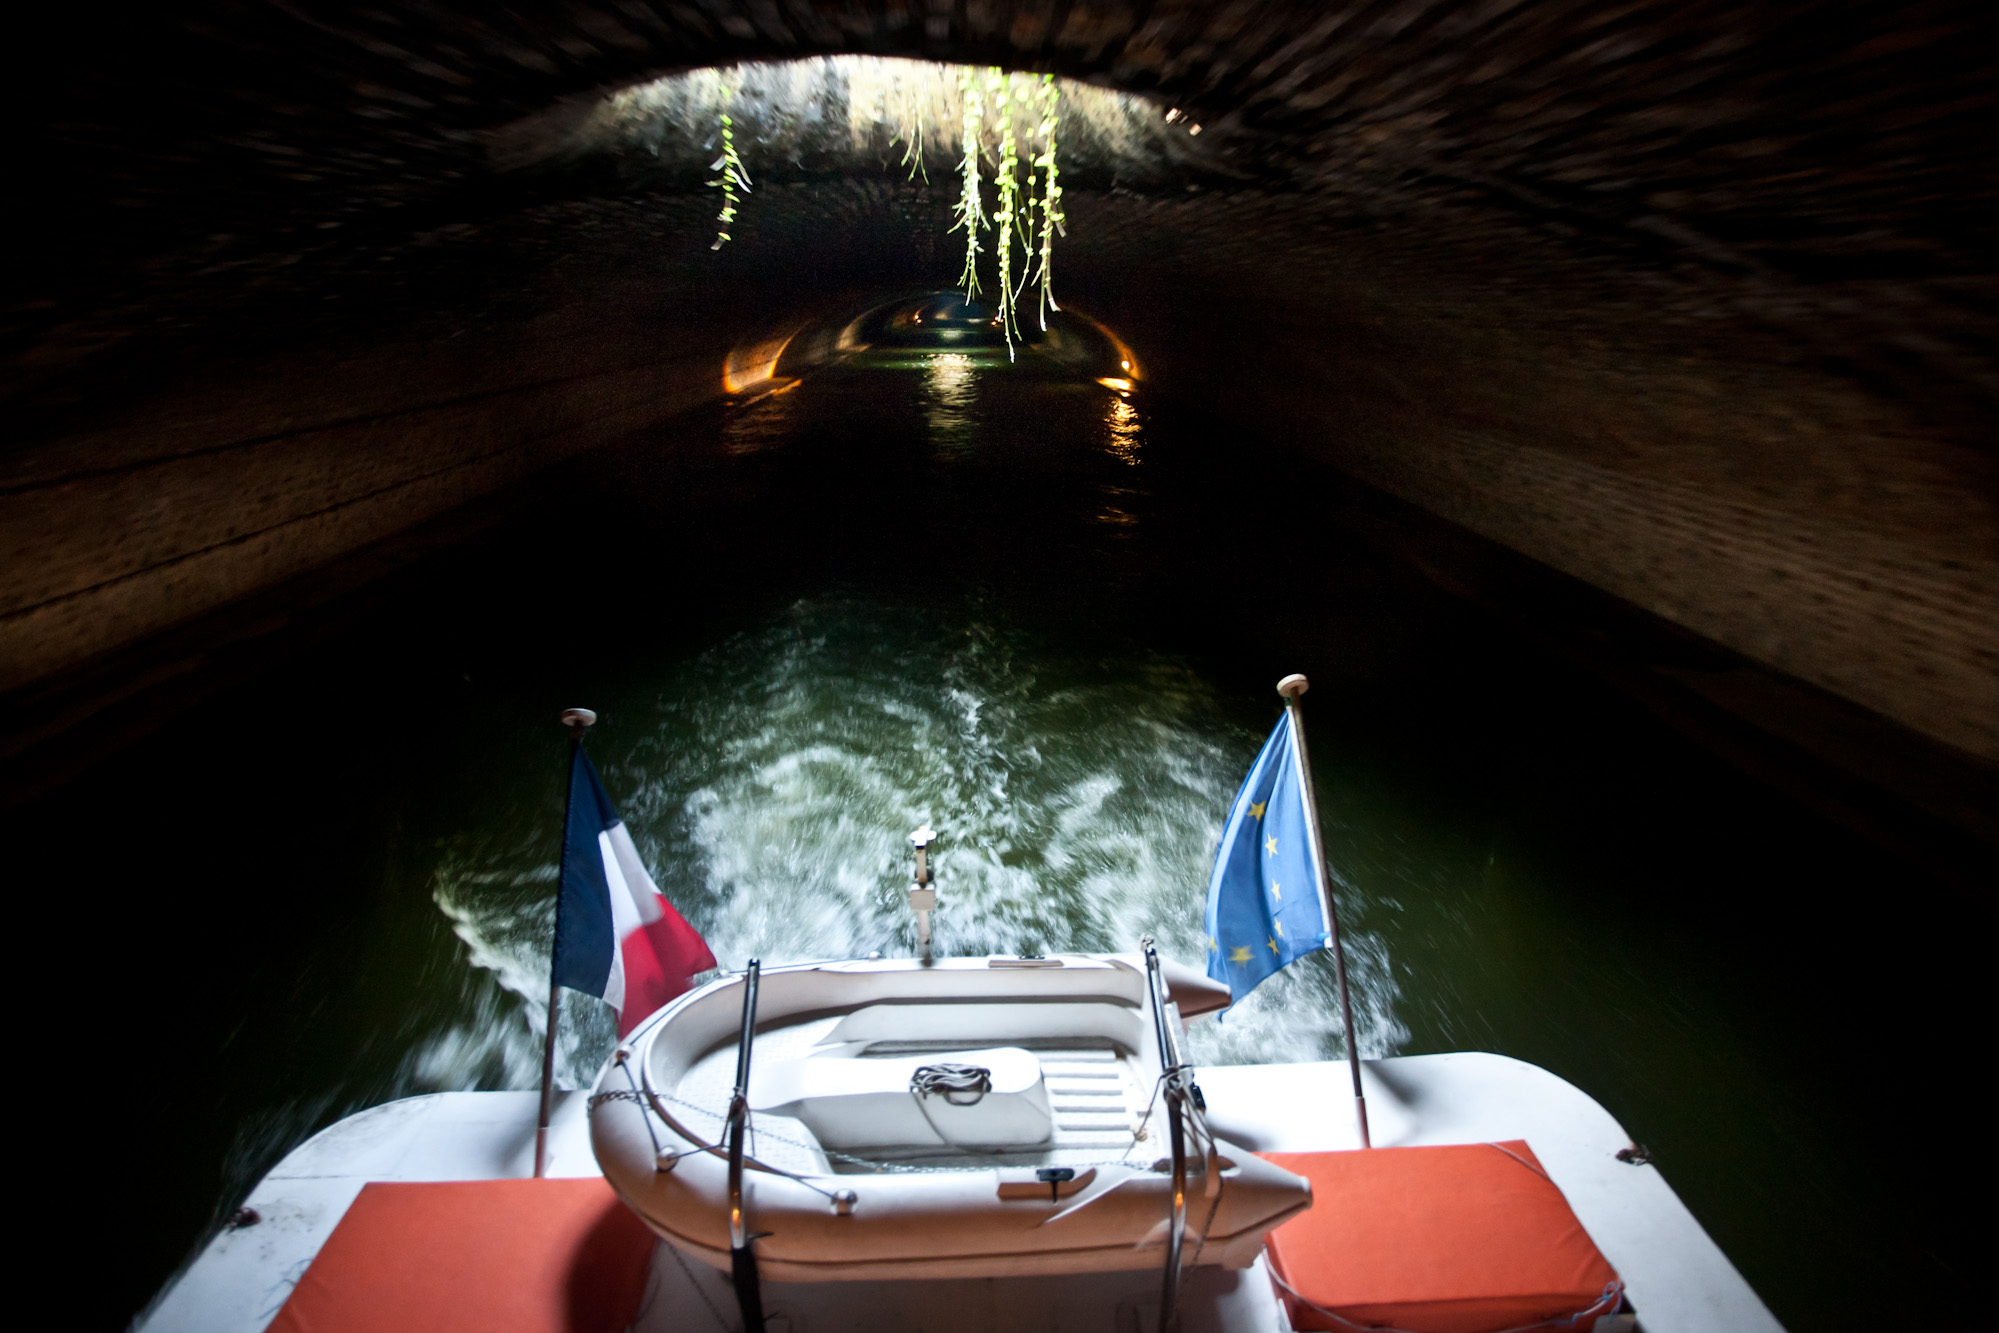 Underground section of Saint-Martin canal